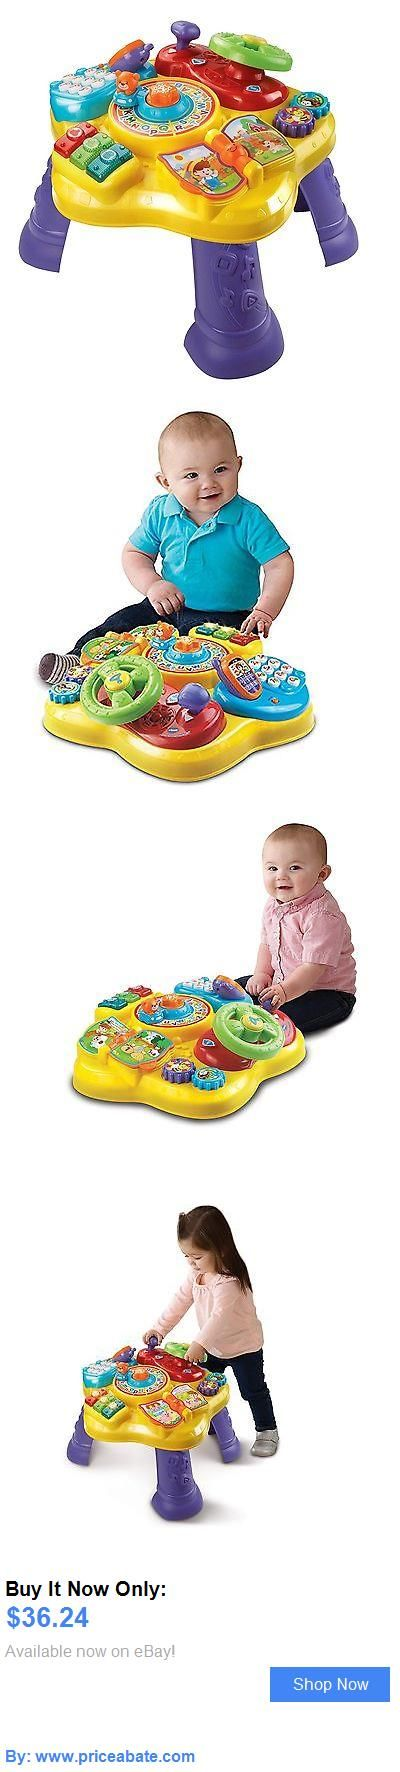 baby kid stuff: Vtech Magic Star Learning Table Educational Toy Kids Toddler Fun Activity New BUY IT NOW ONLY: $36.24 #priceabatebabykidstuff OR #priceabate